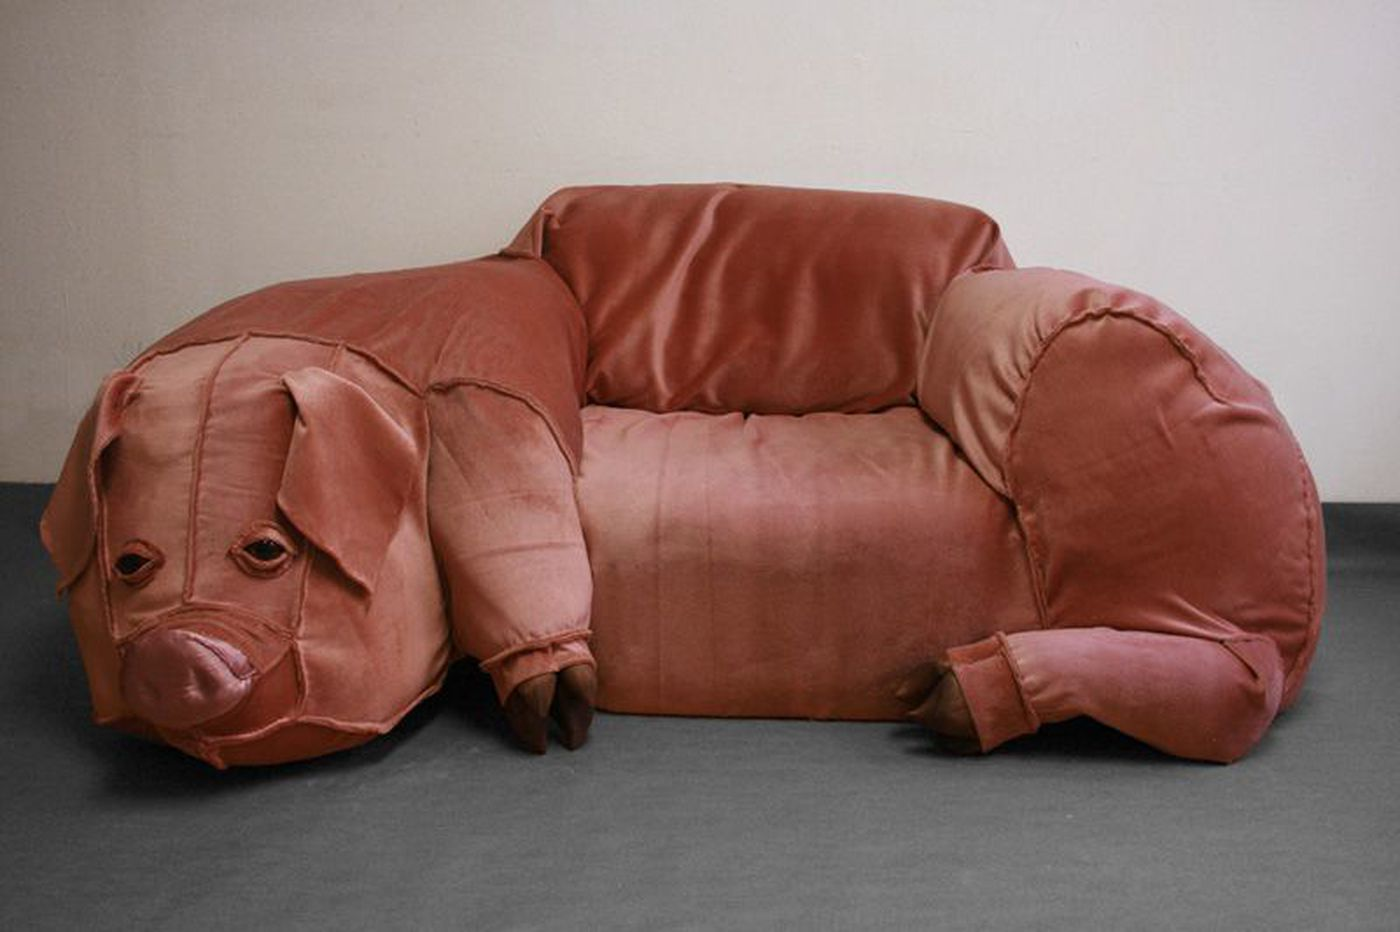 A Philly artist, a fake Craigslist ad, and a pig-shaped couch